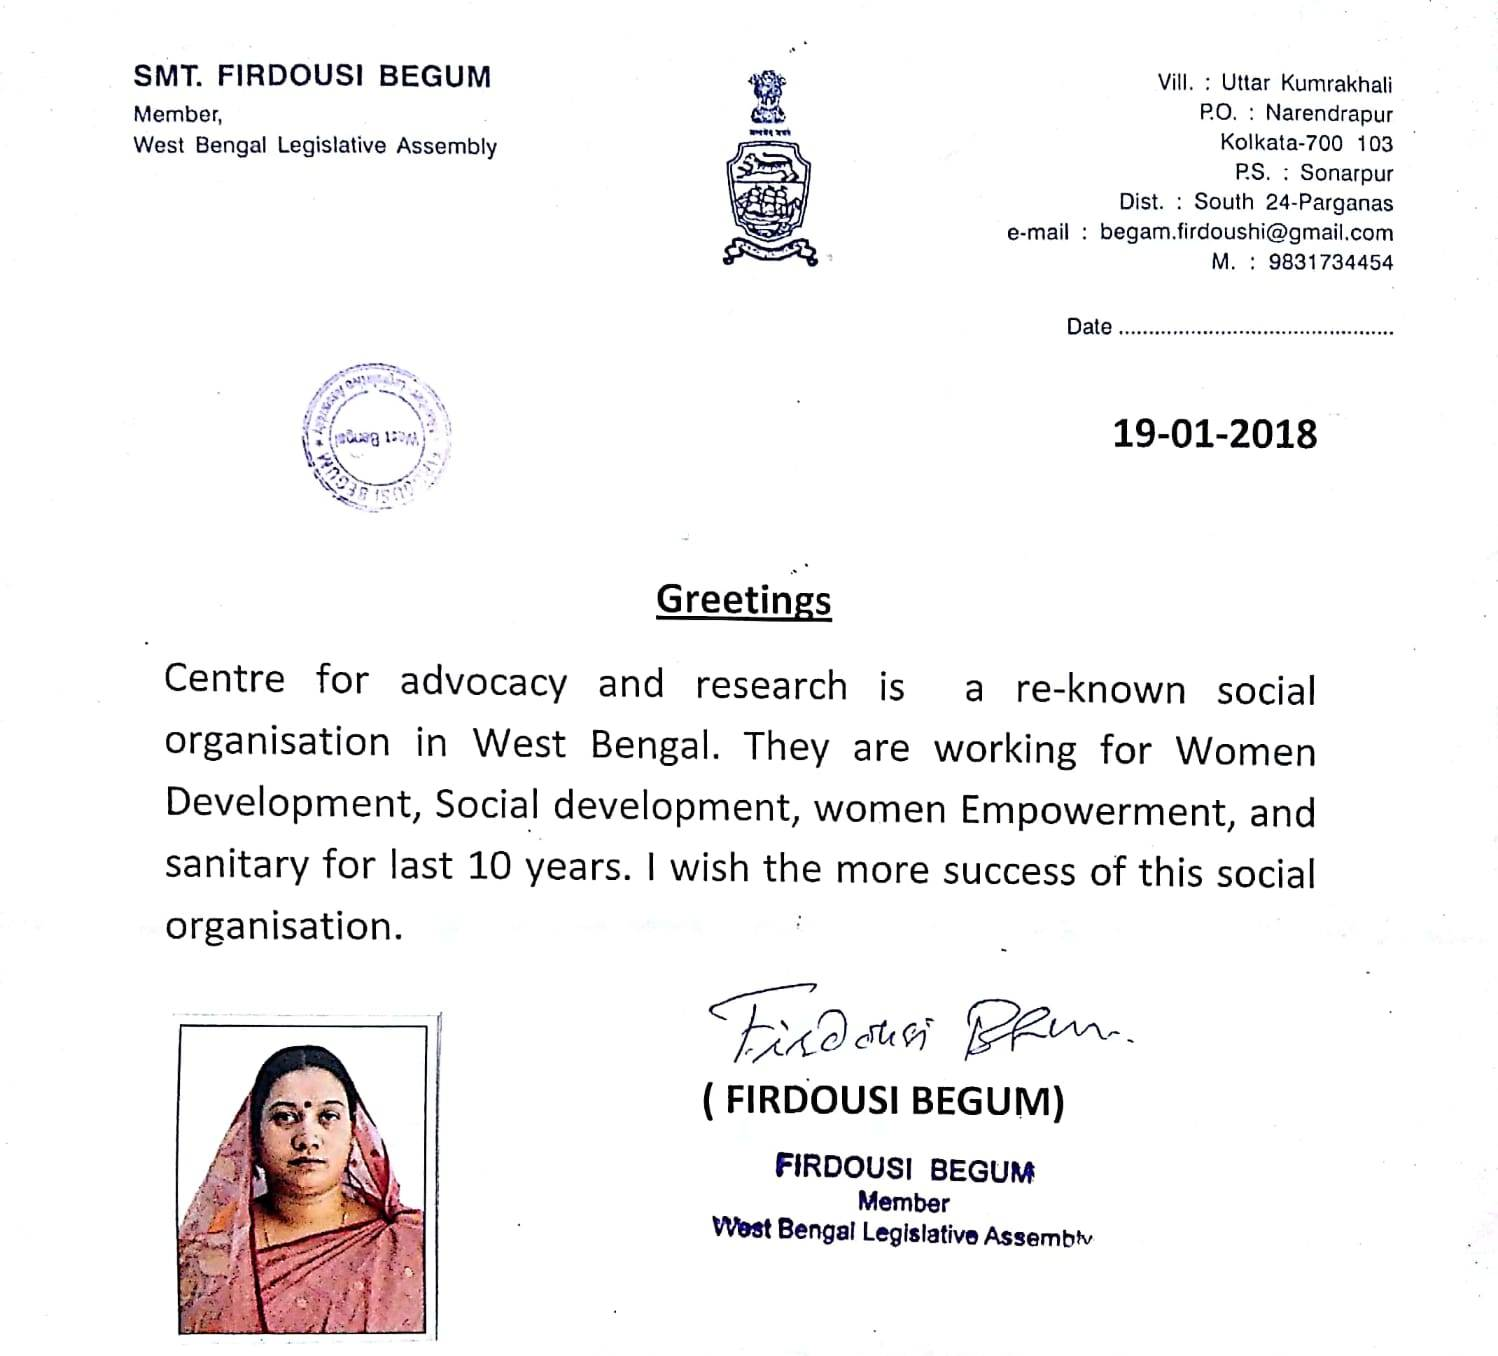 On 19 January 2018, CFAR received appreciation letter from Smt. Firdousi Begum, Member of West Bengal Legislative Assembly for working on social development, women empowerment and sanitation for last 10 years in Kolkata.